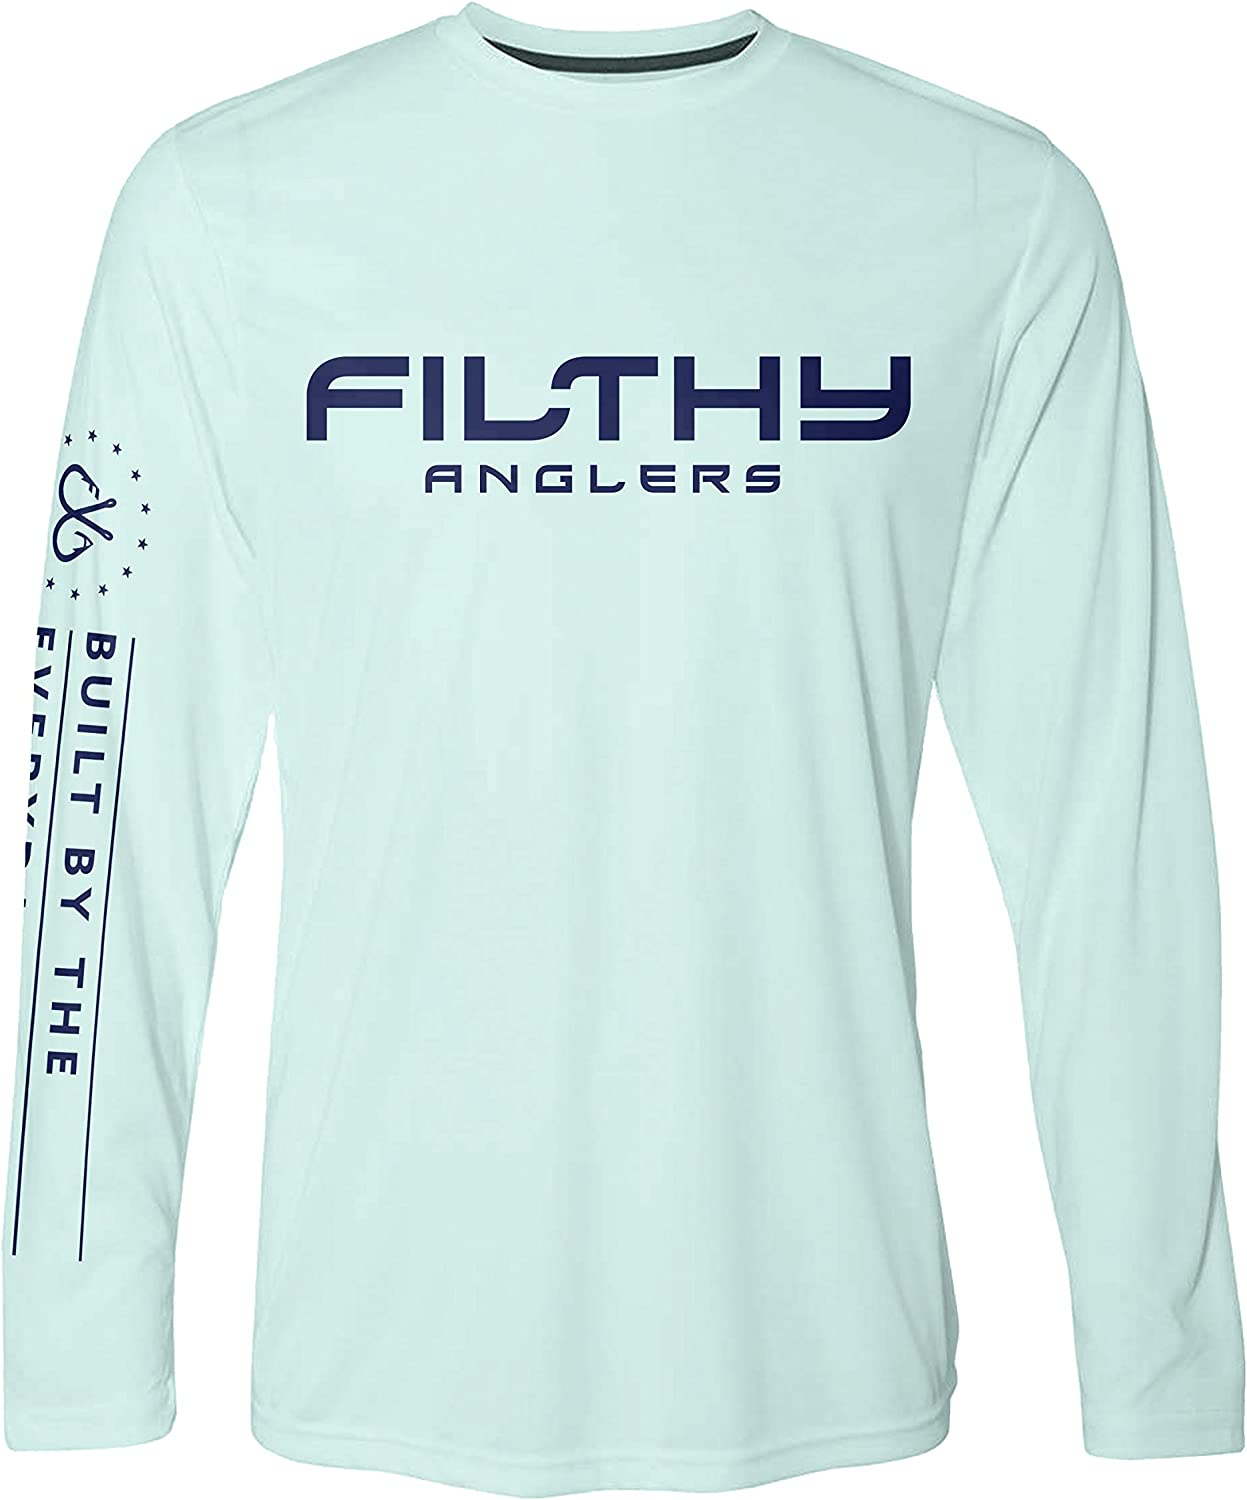 Filthy Anglers Fishing Shirt Long NEW before selling ☆ Sleeve Protection Sun UPF Weekly update 50+